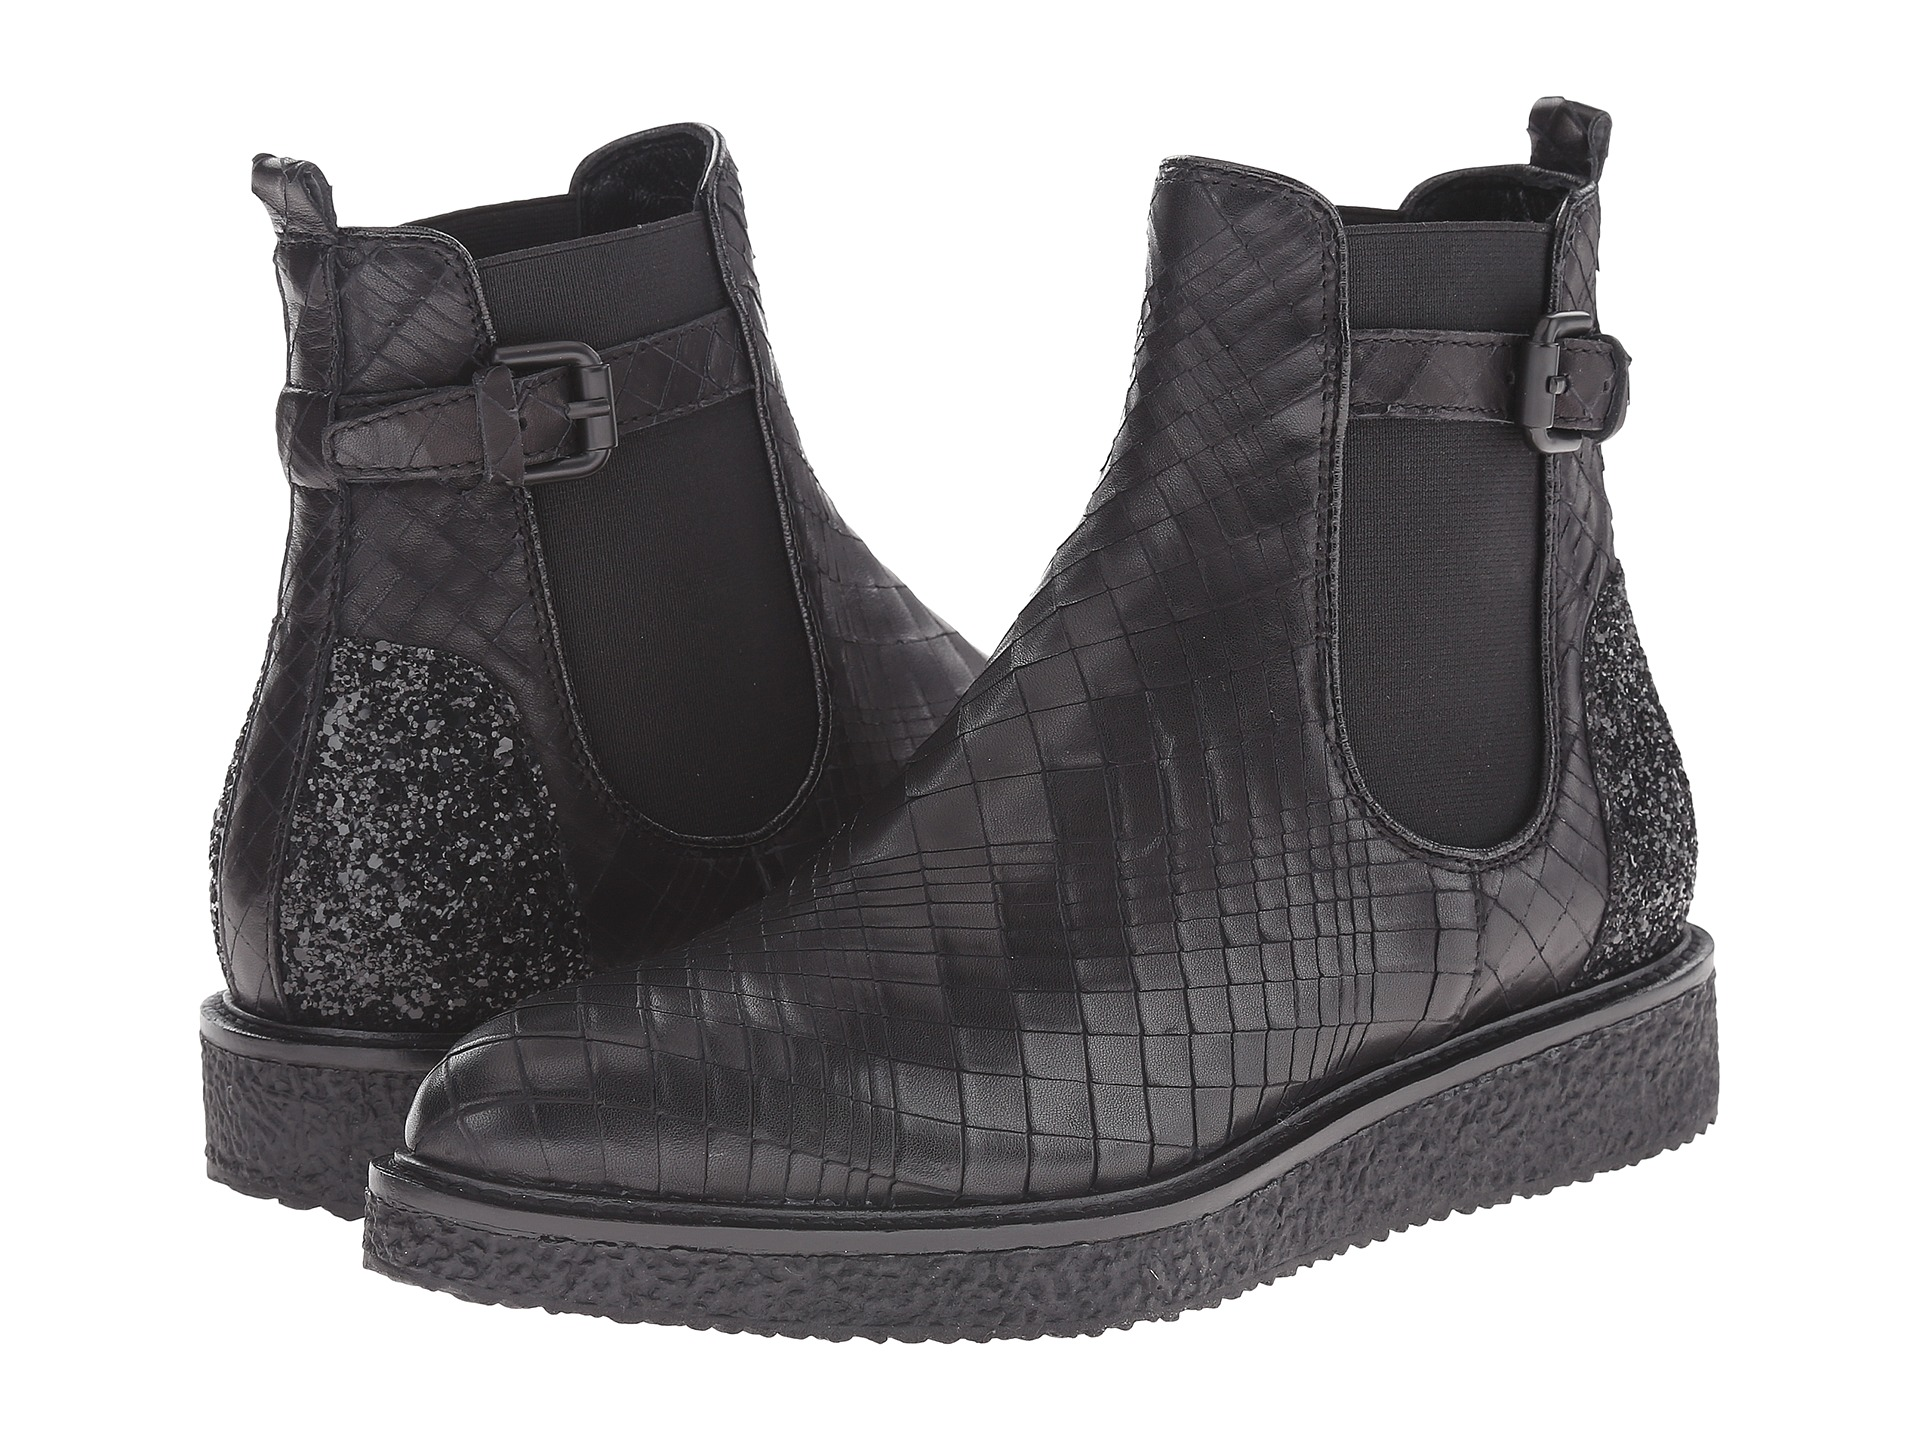 kennel schmenger mary flatform ankle boot. Black Bedroom Furniture Sets. Home Design Ideas